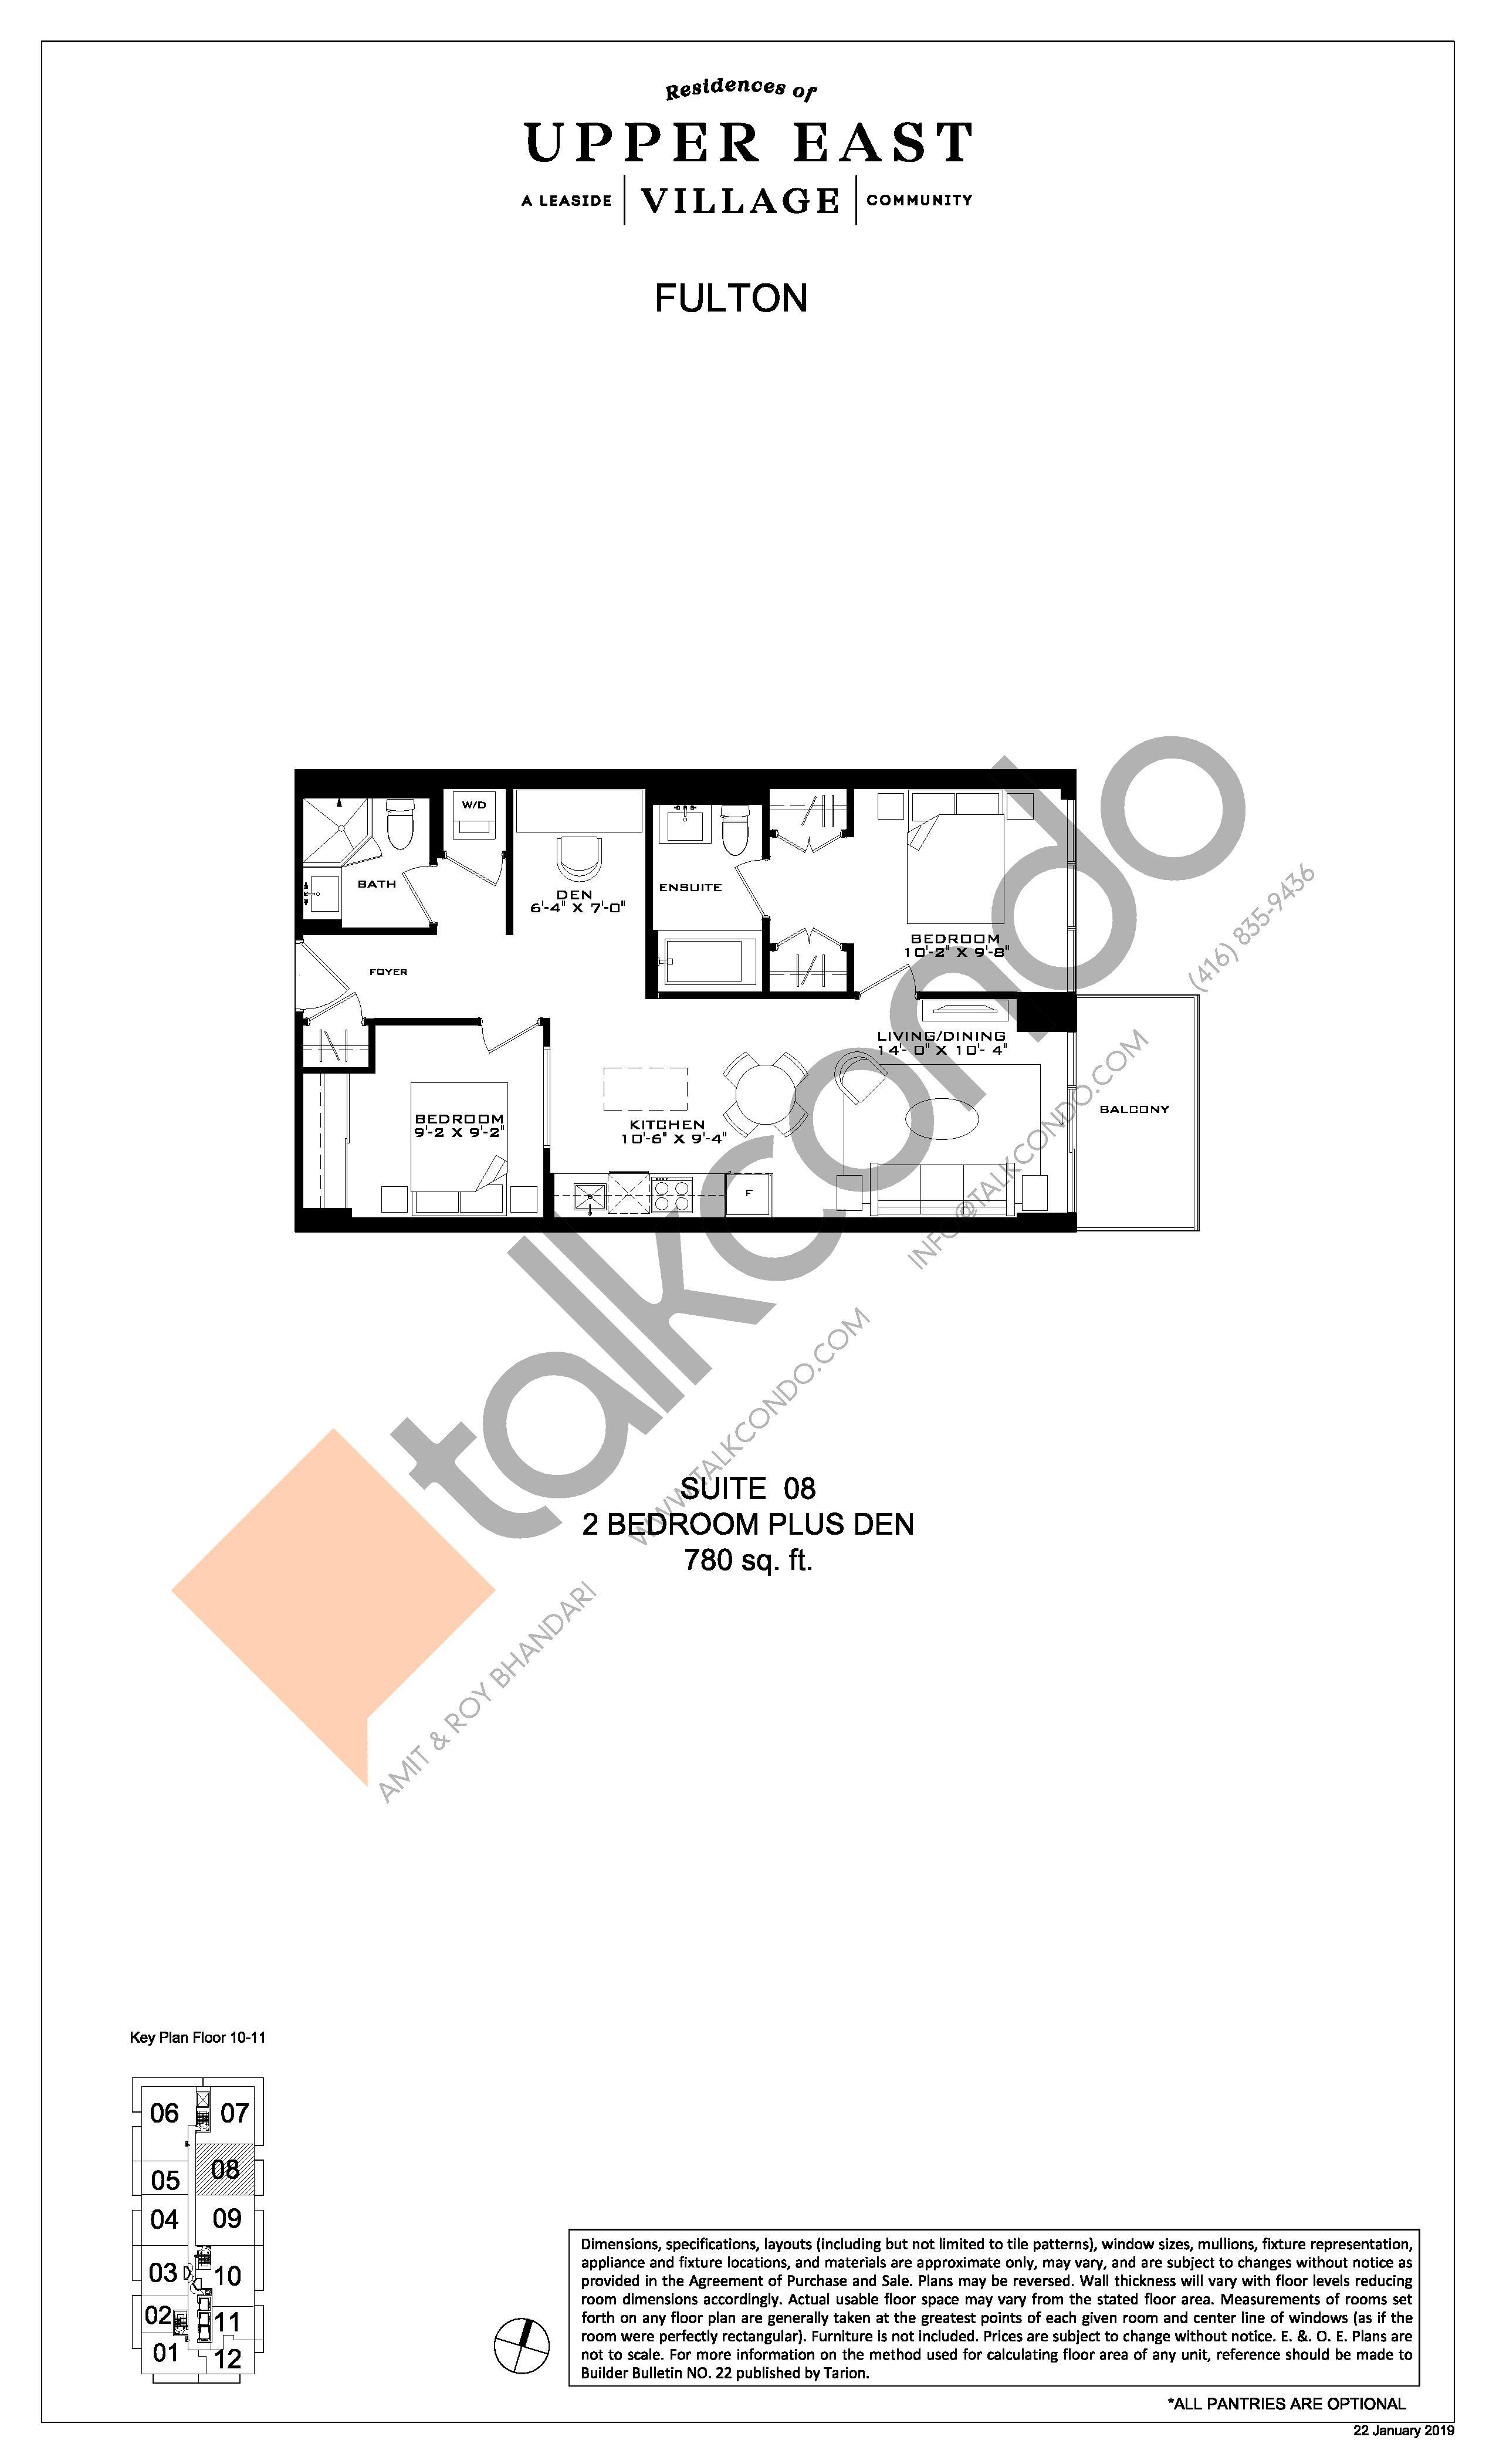 Fulton Floor Plan at Upper East Village Condos - 780 sq.ft